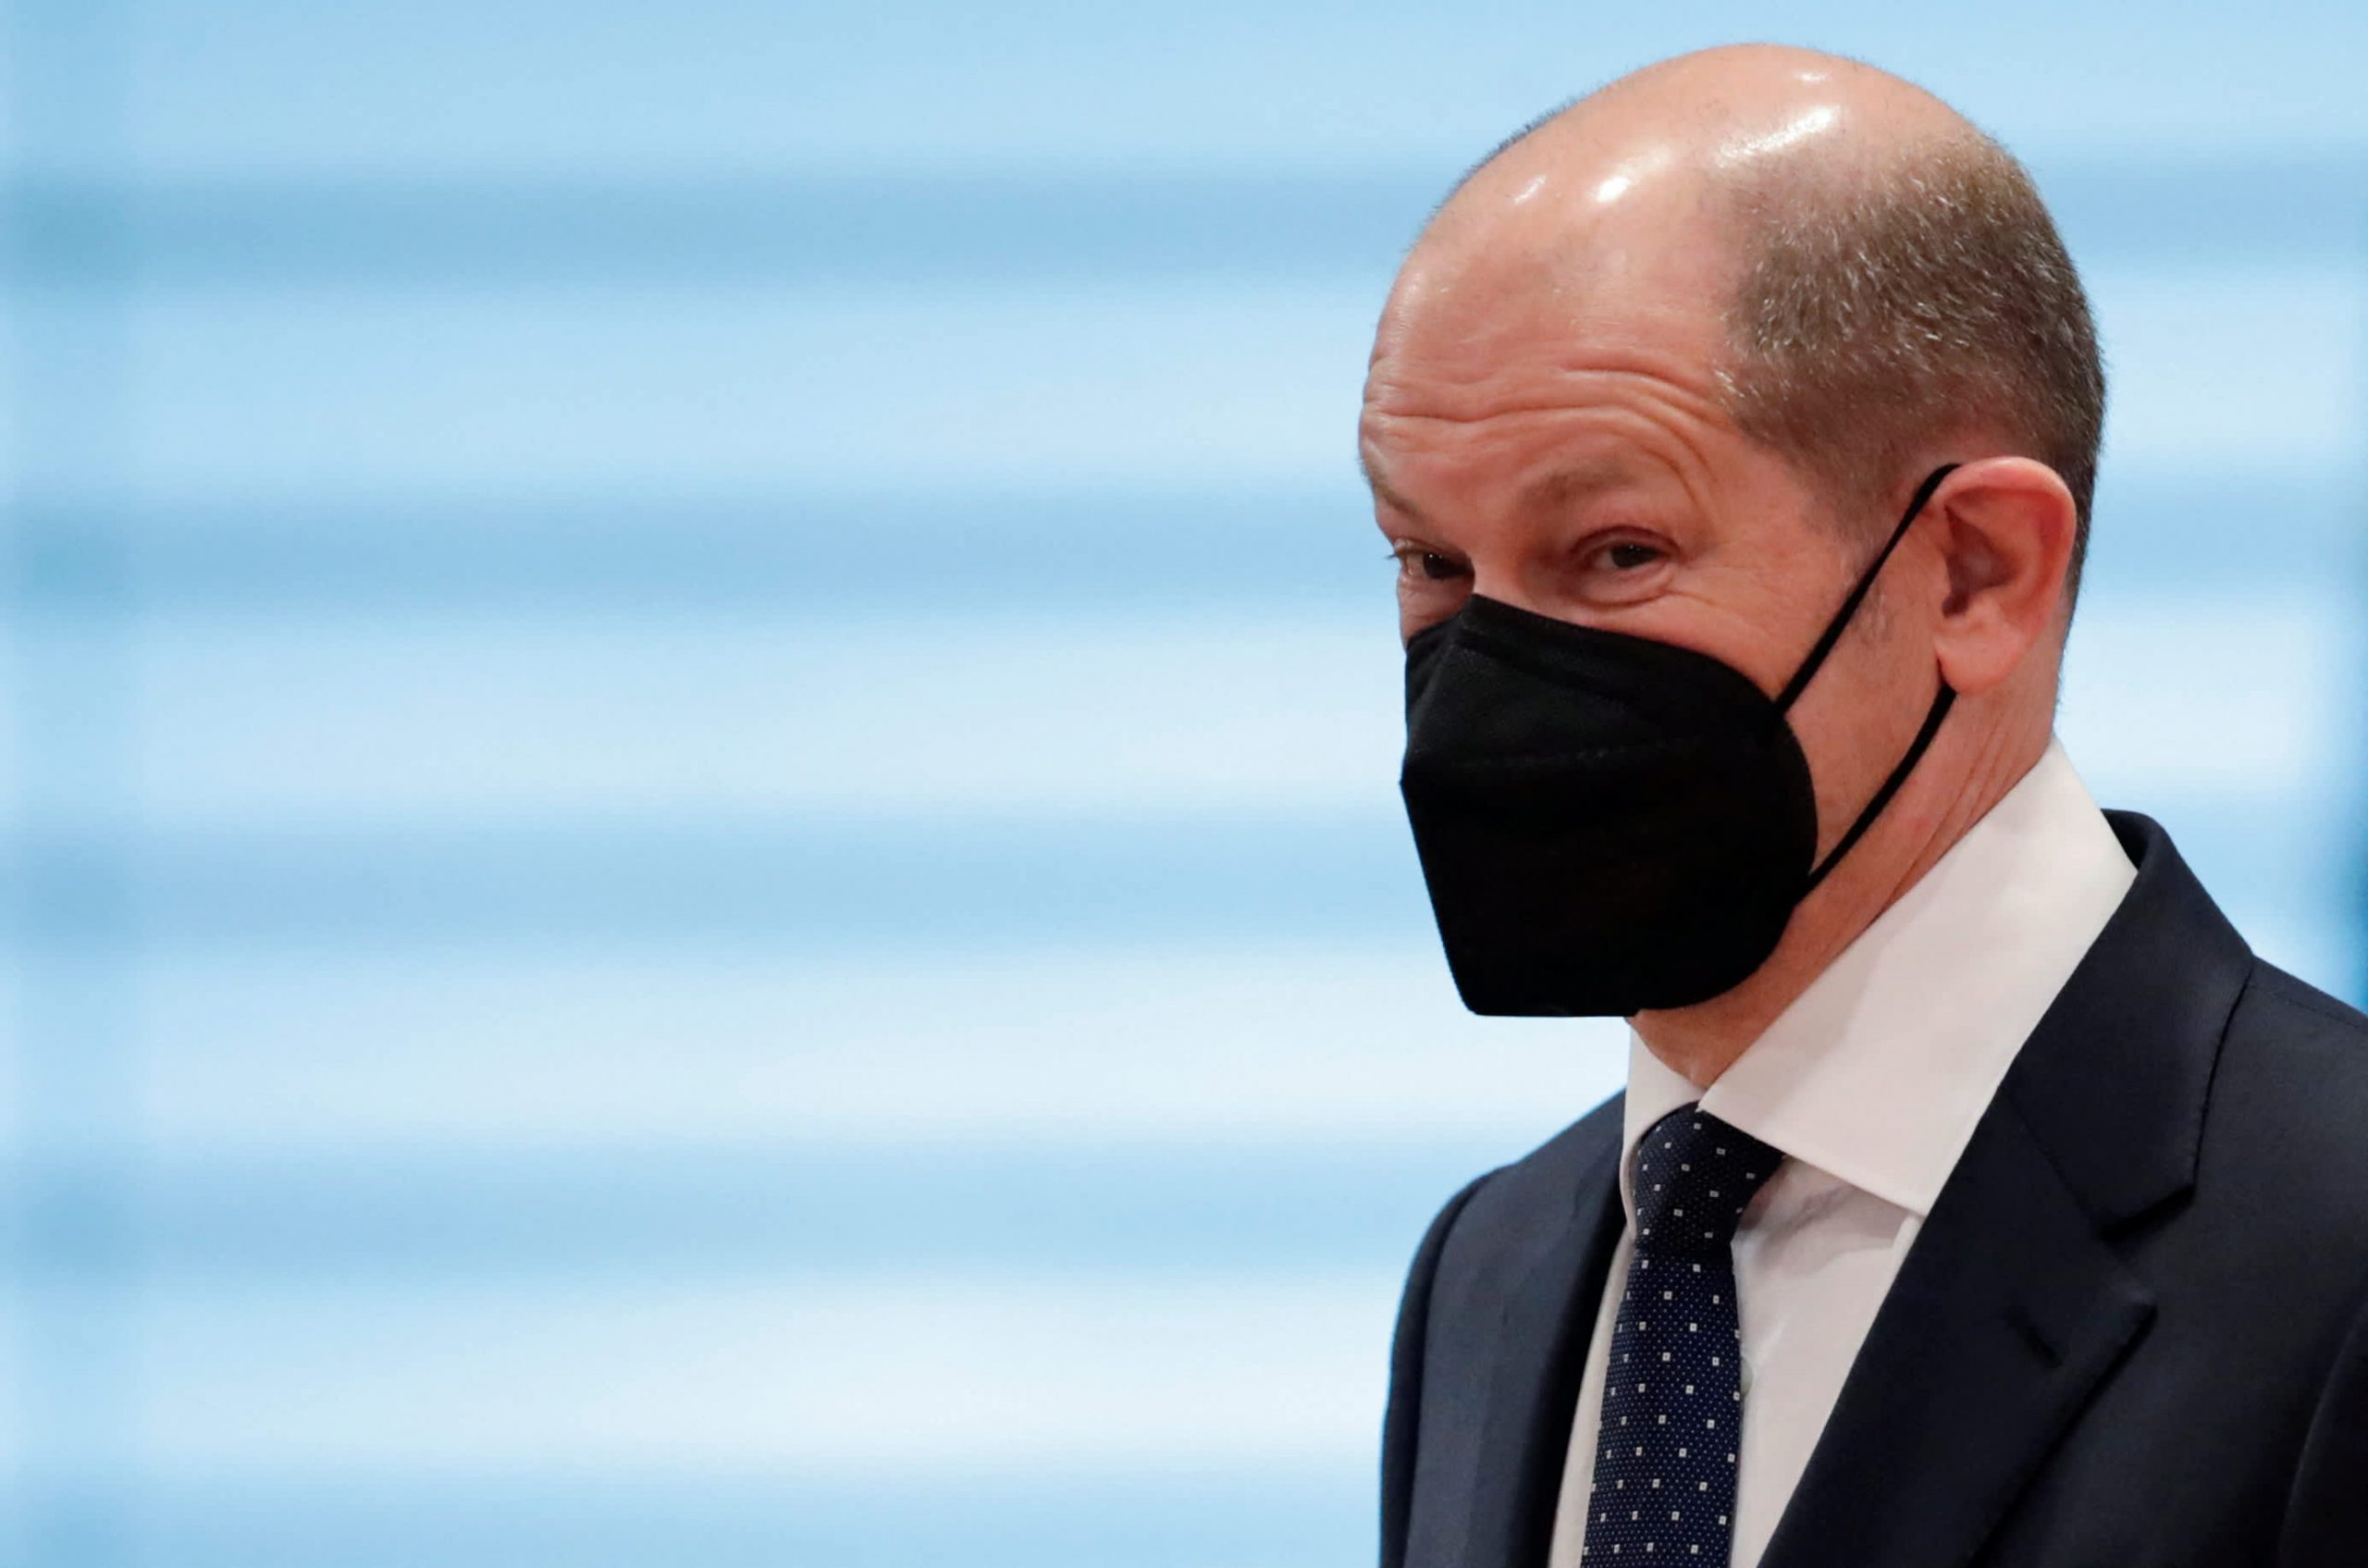 Germany's Scholz on Covid crisis, vaccinations and higher taxes